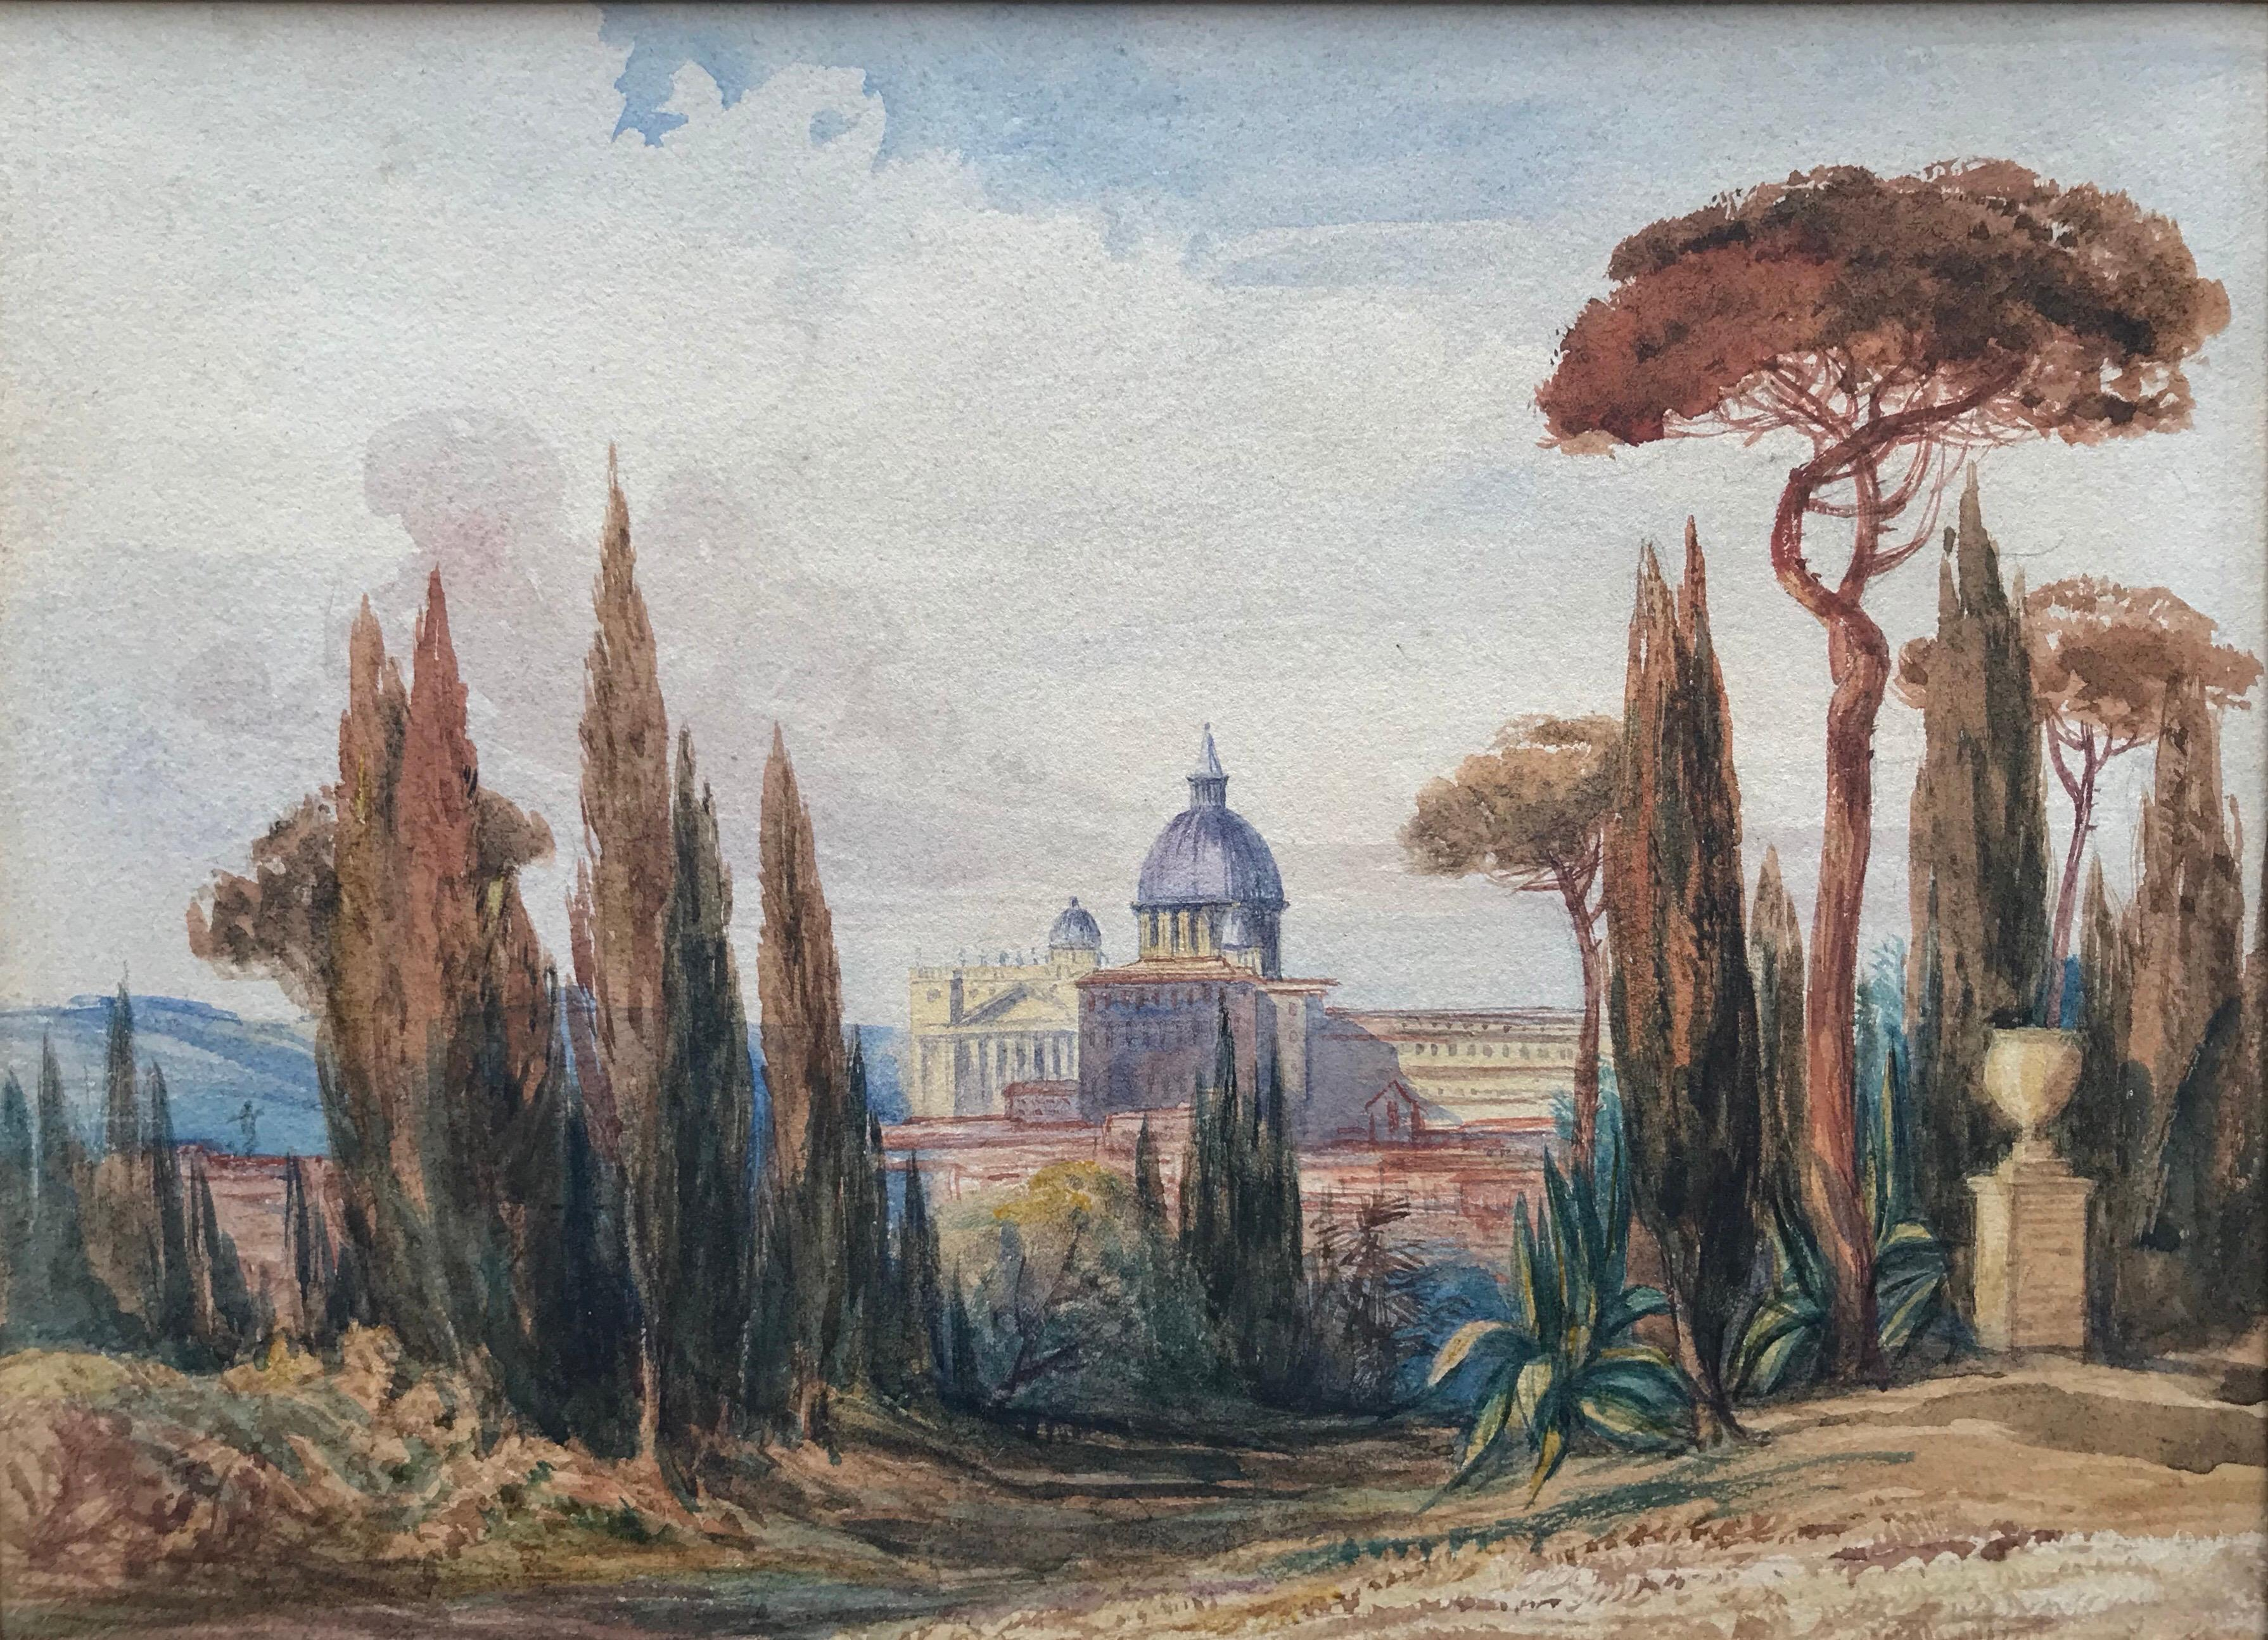 English School Drawings and Watercolor Paintings